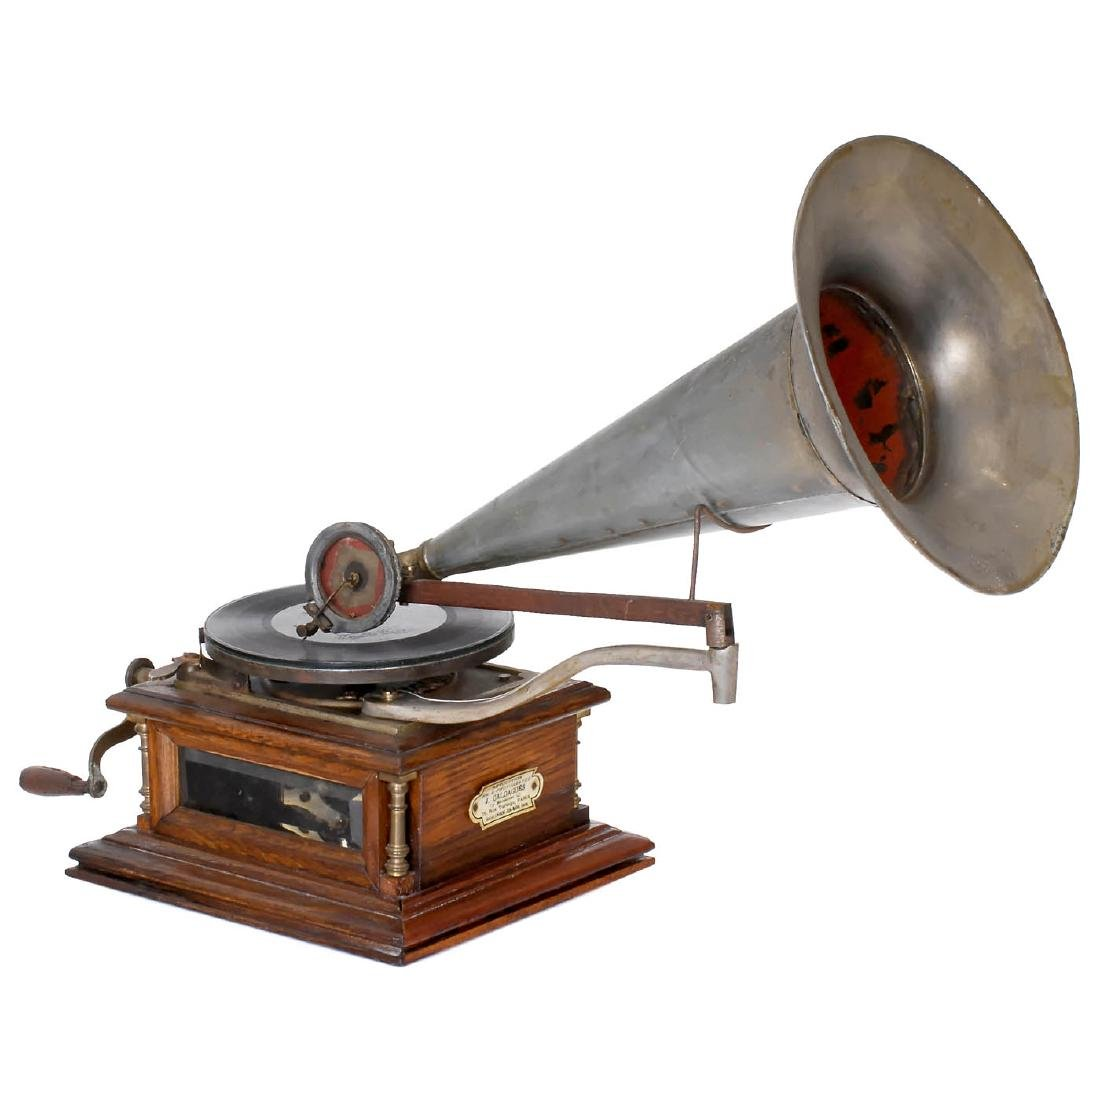 Zonophone Style A Gramophone, c. 1900